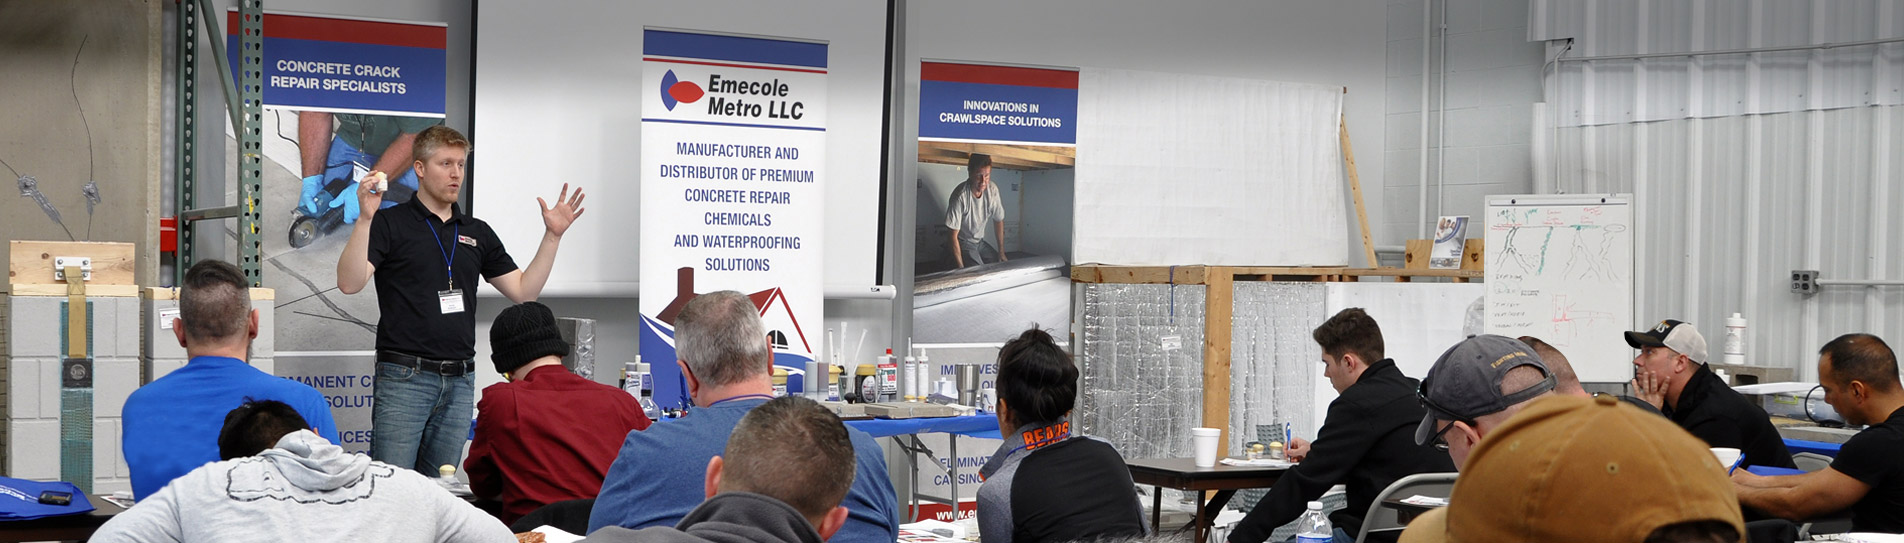 Basement Waterproofing Contractor Trainings